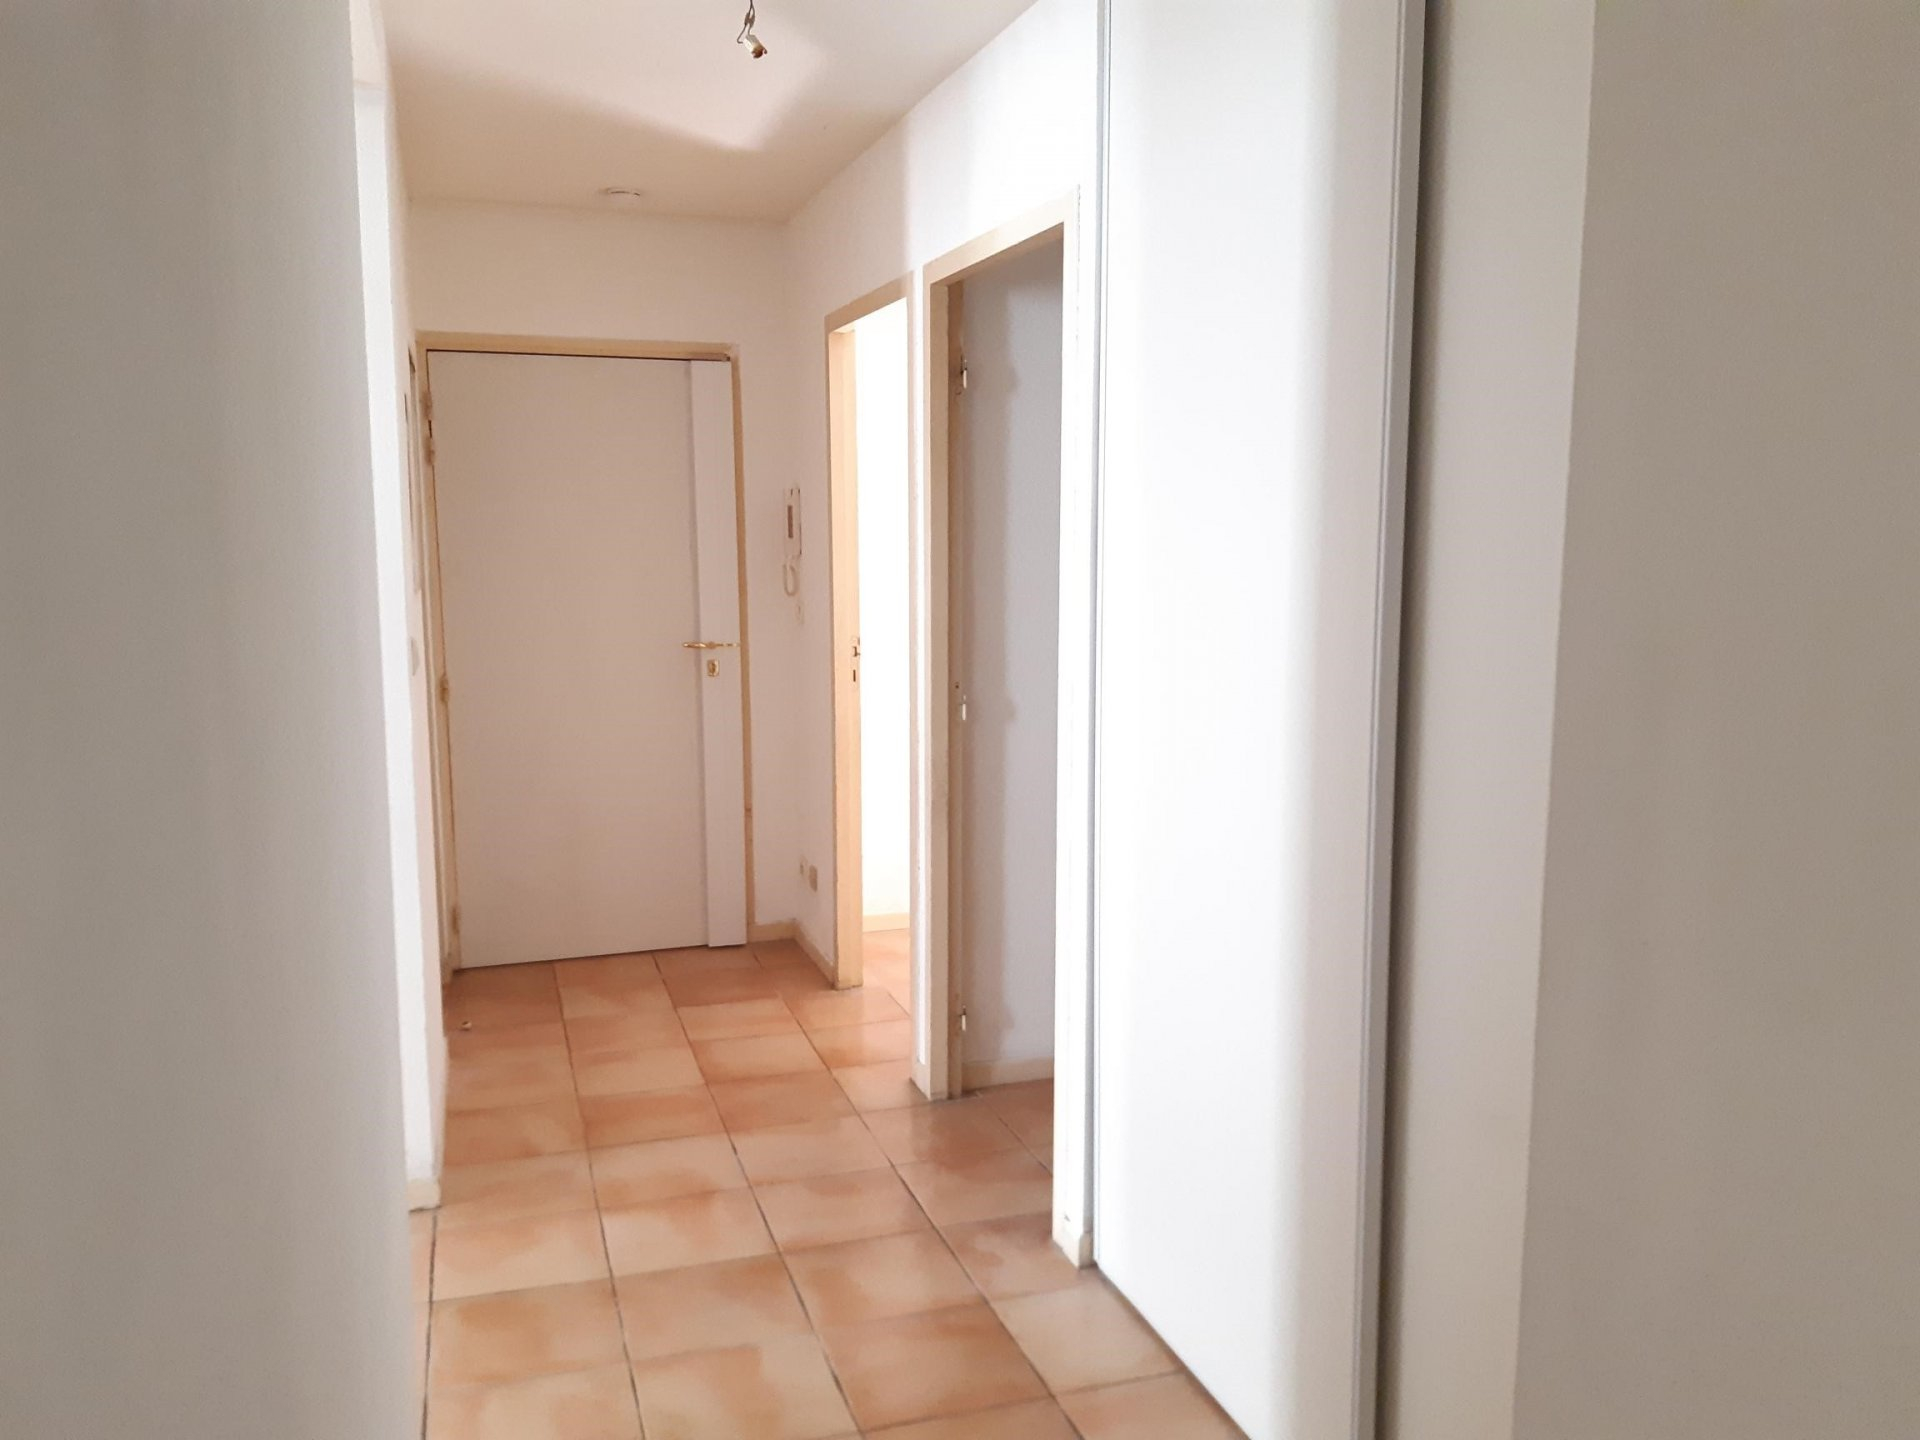 Location Appartement TARASCON surface habitable de 72 m²